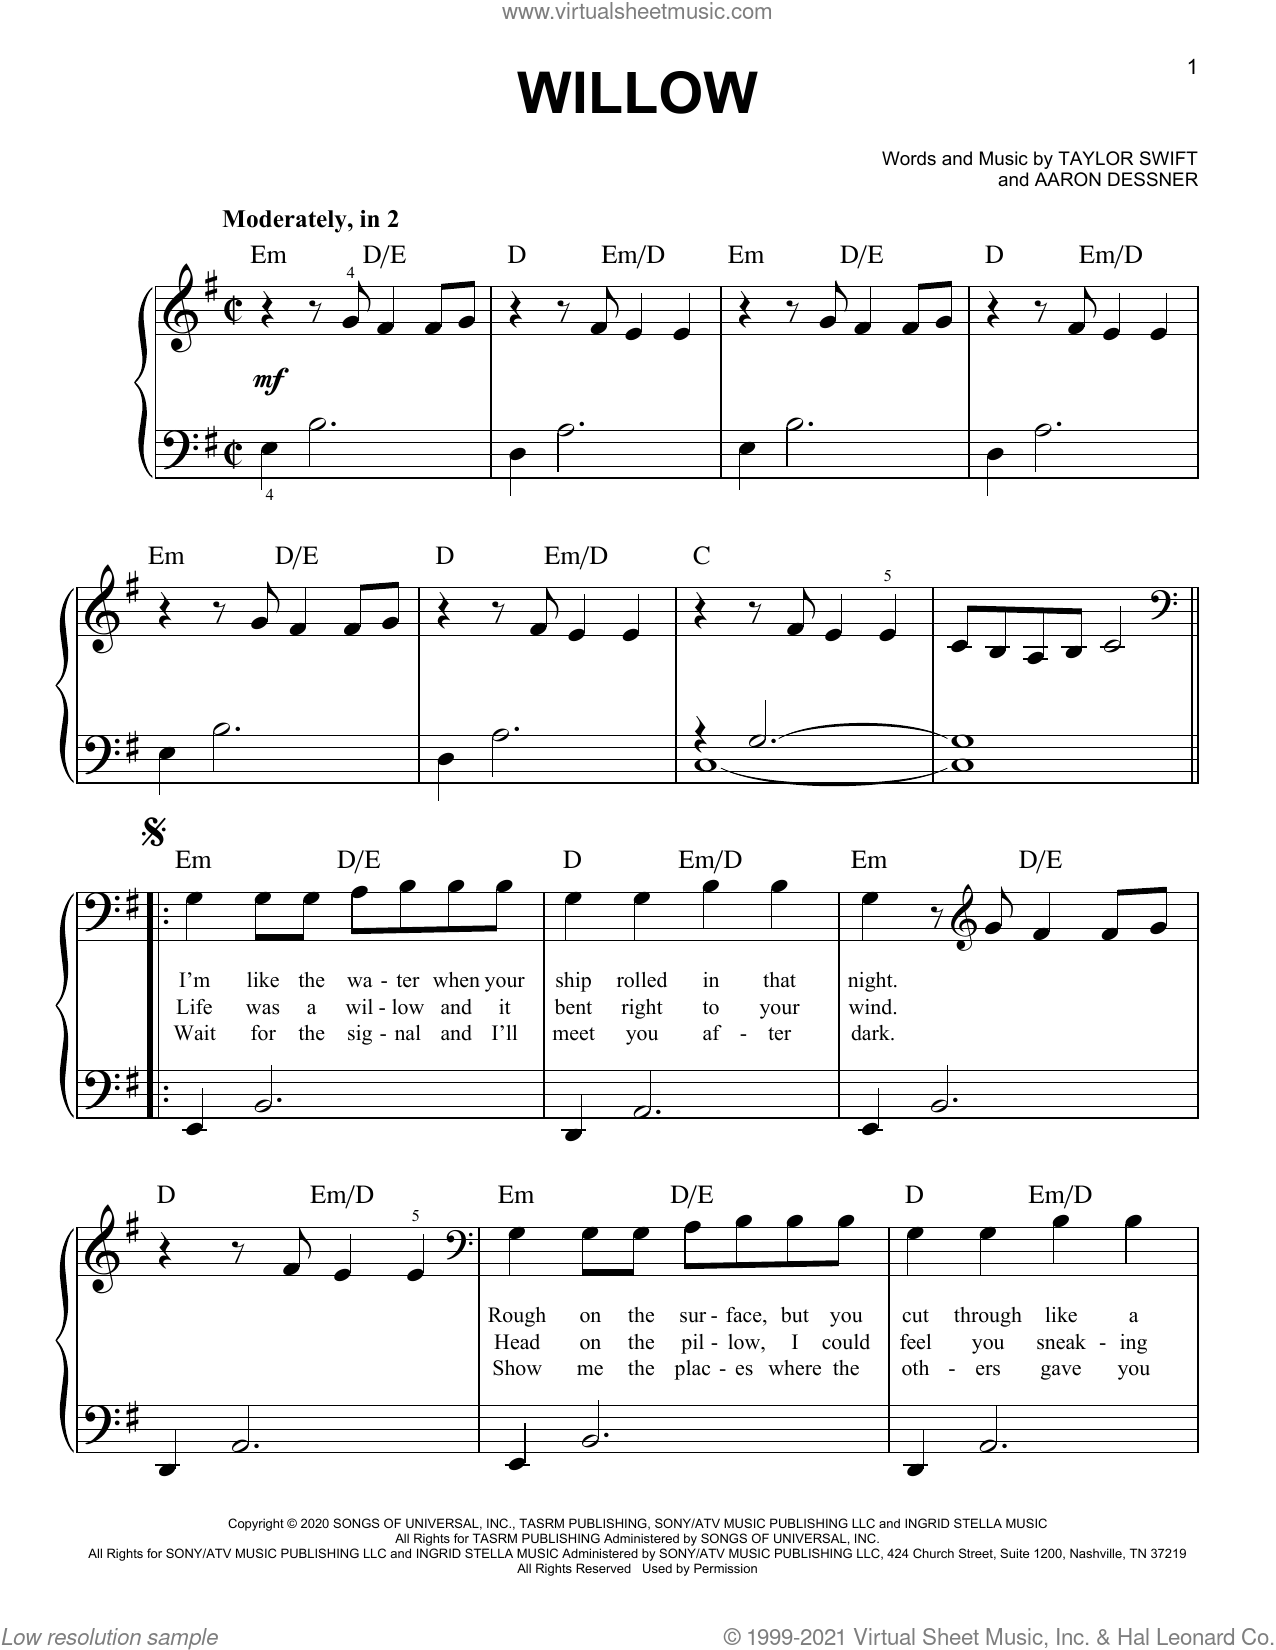 willow sheet music for piano solo by Taylor Swift and Aaron Dessner, easy skill level